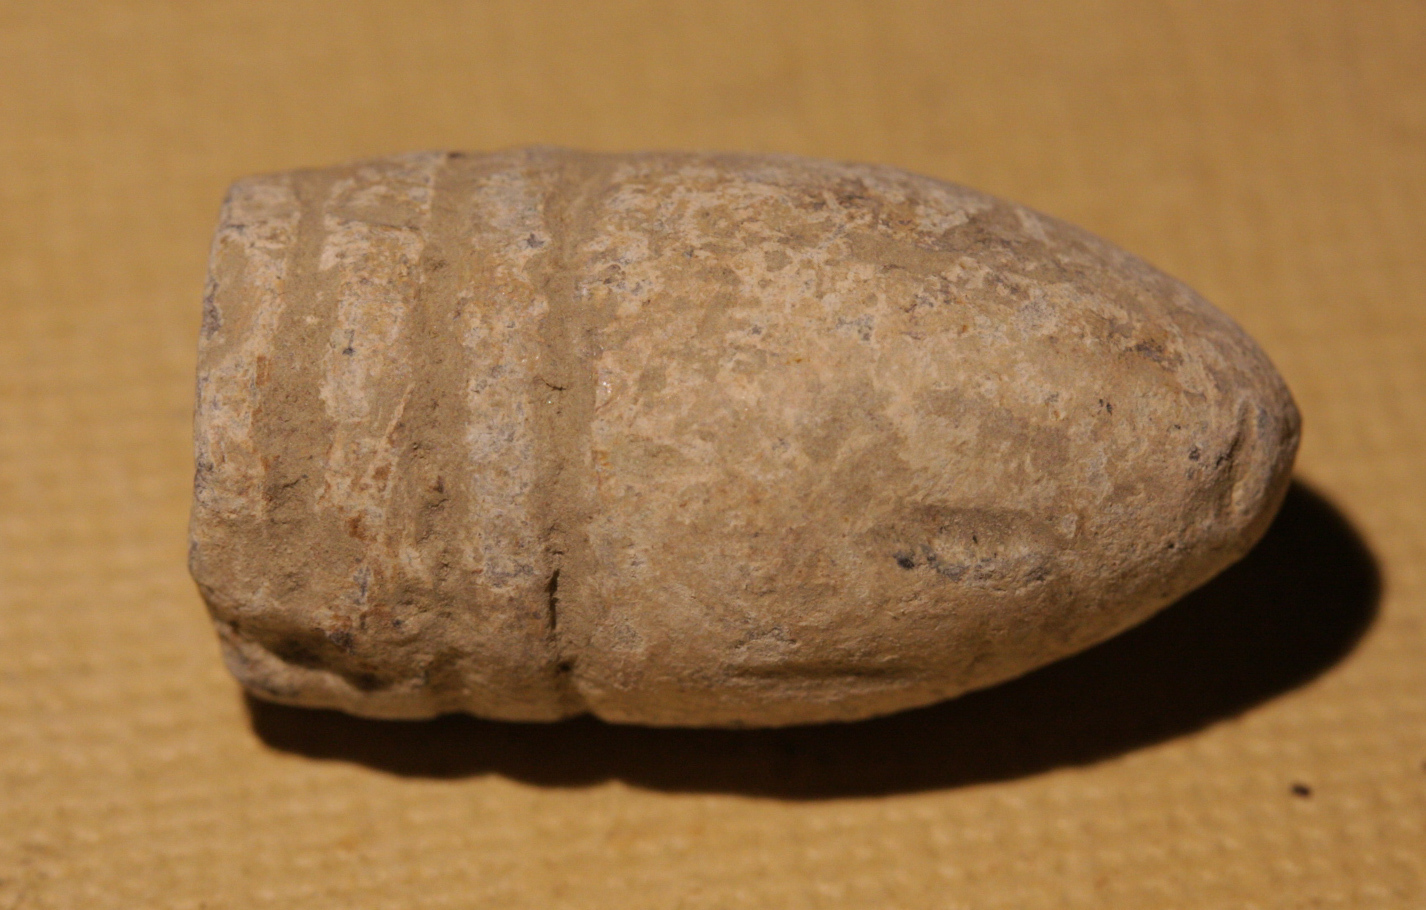 JUST ADDED ON 12/29 - SOUTHWEST OF GETTYSBURG HOSPITAL / PICKETT'S CHARGE / ROSENSTEEL COLLECTION - Fired Bullet GR-SWHR03